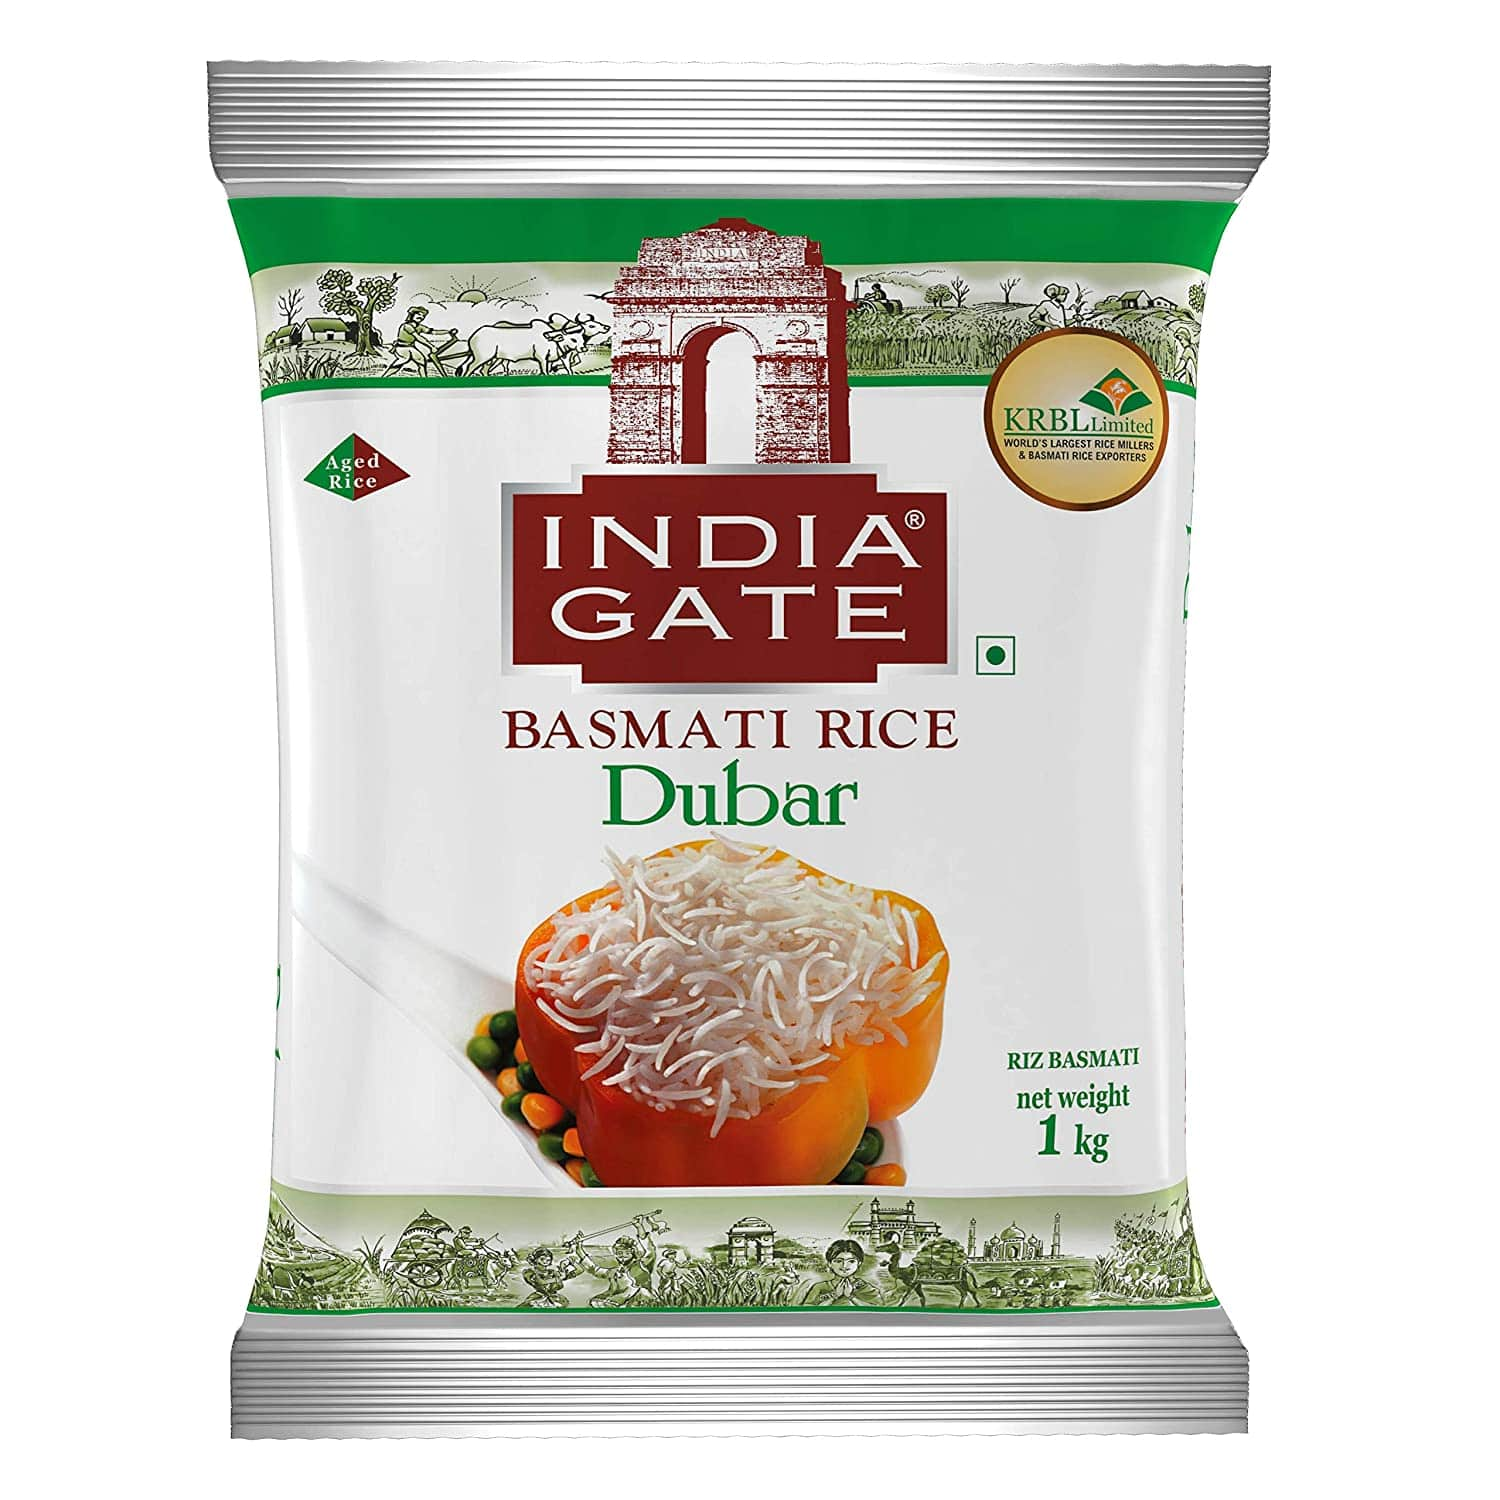 India Gate Basmati Rice Dubar,